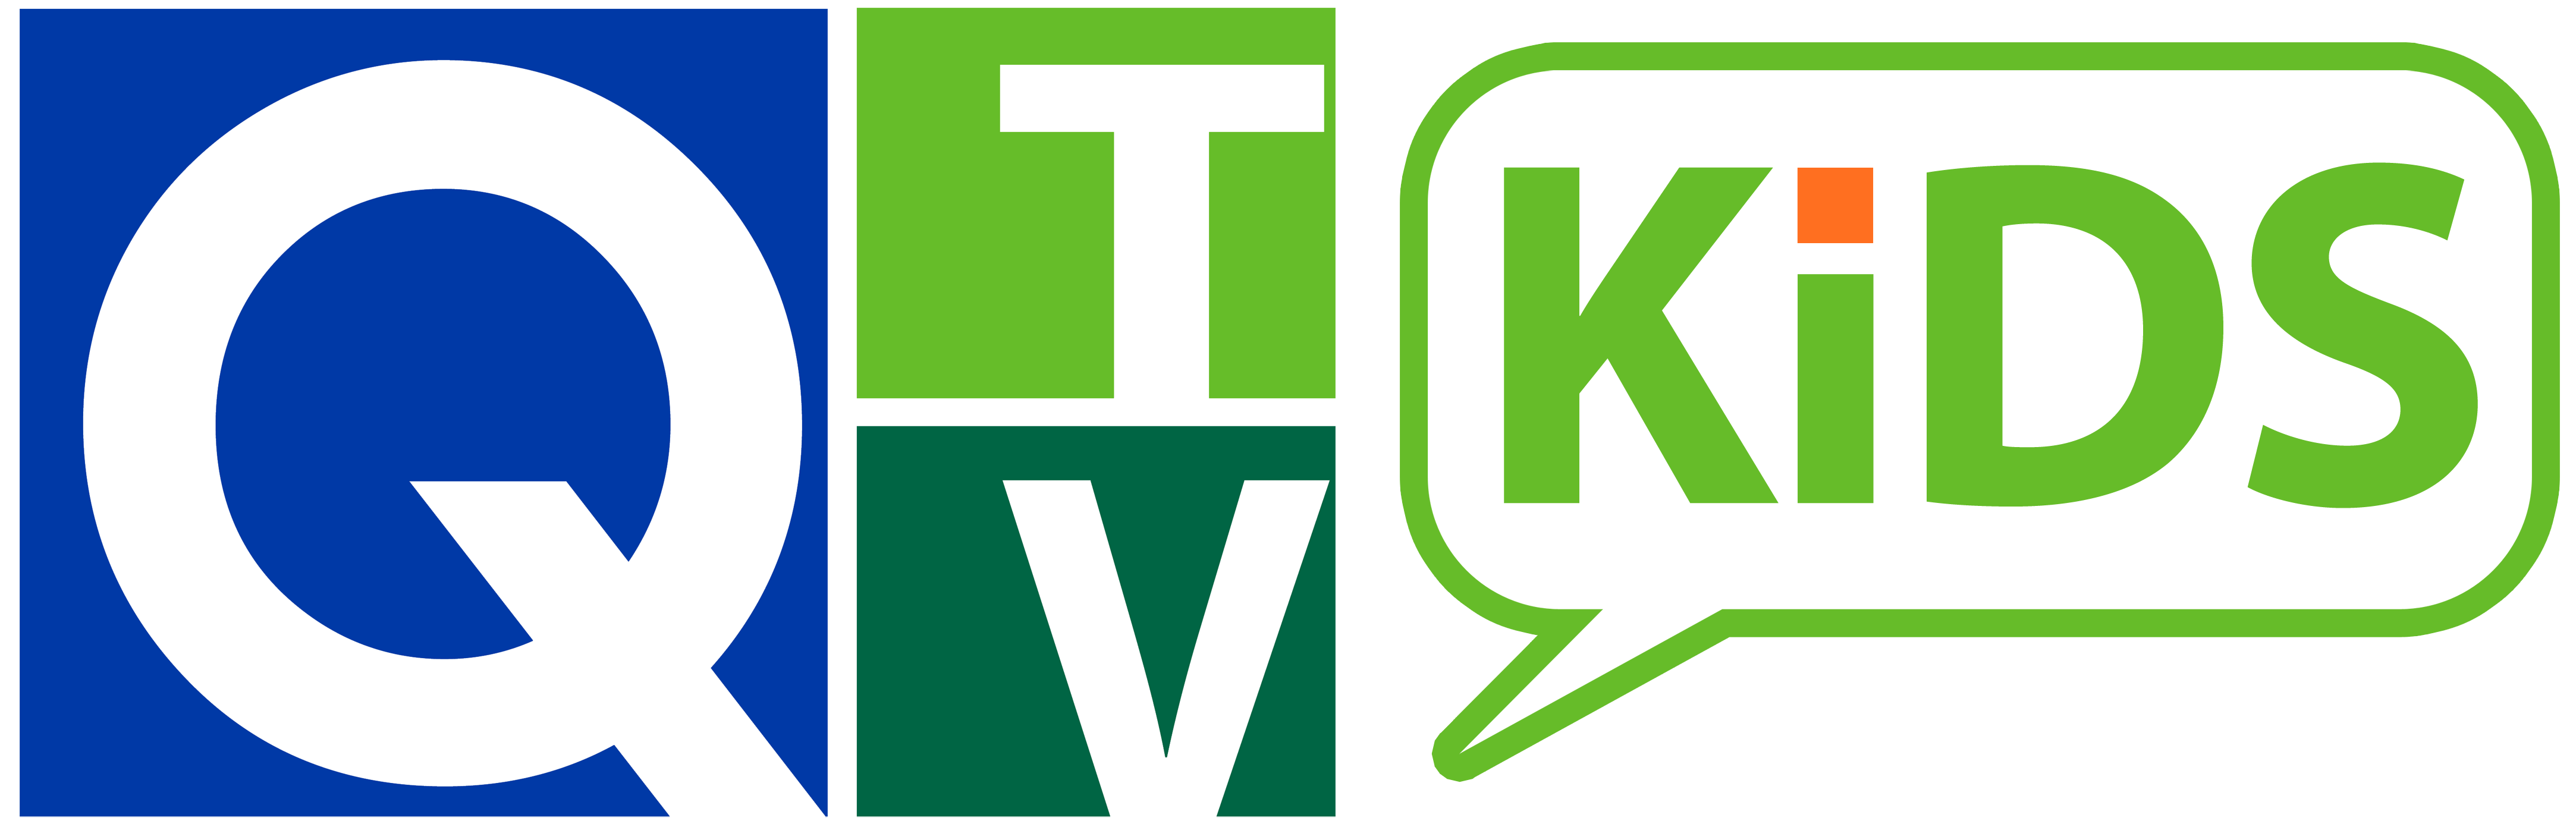 Q-TV Kids Logo without Delta College Name